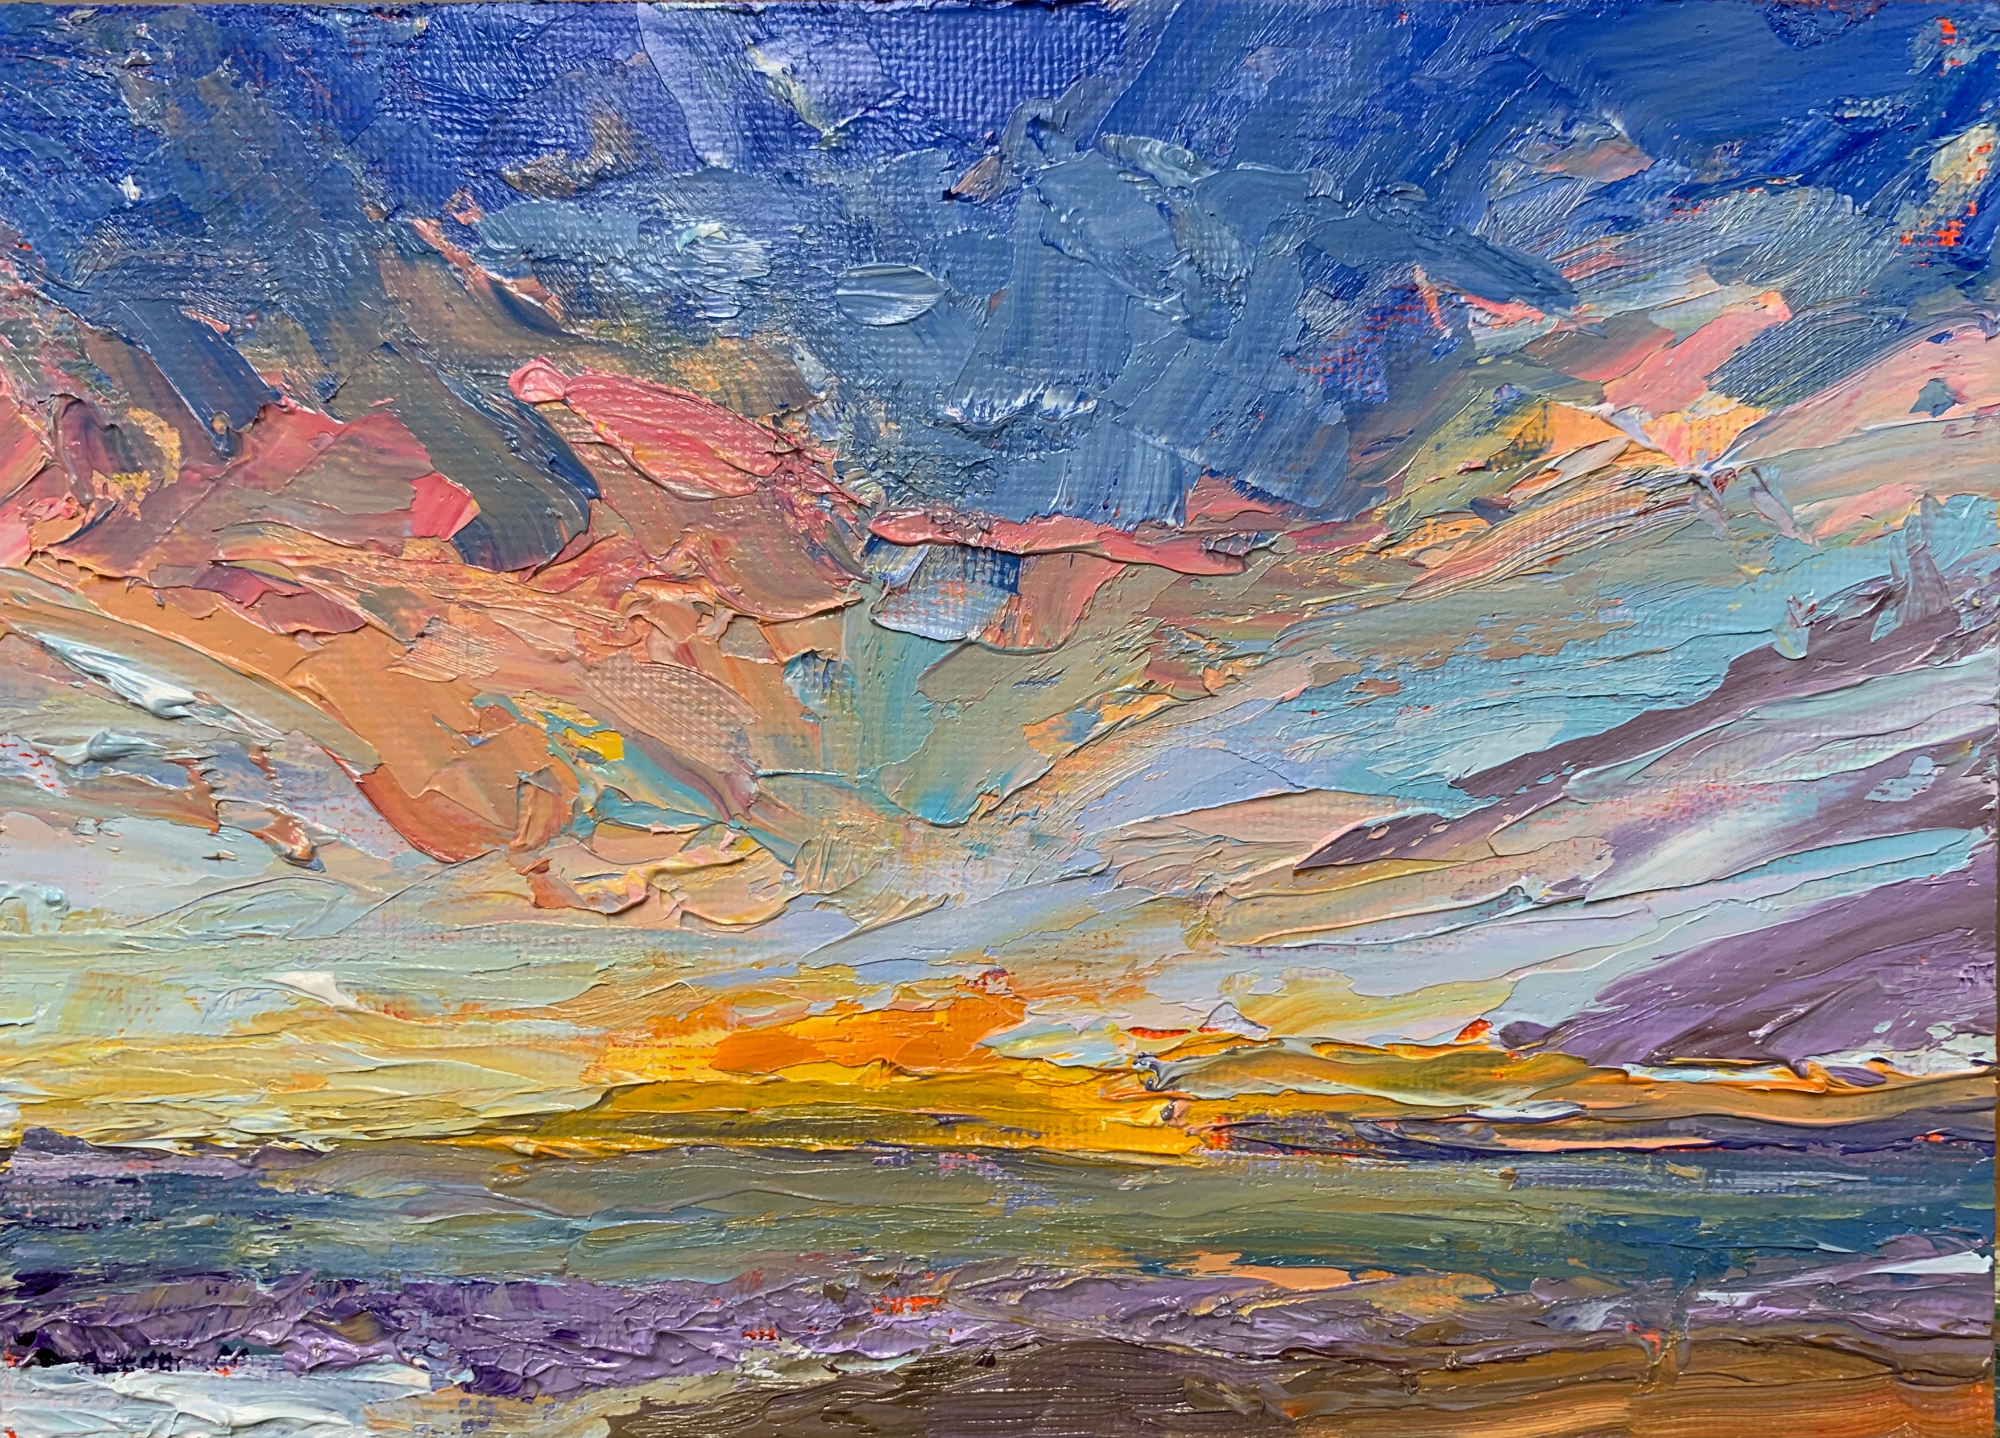 Fire in the Sky, original oil painting by Bart Levy